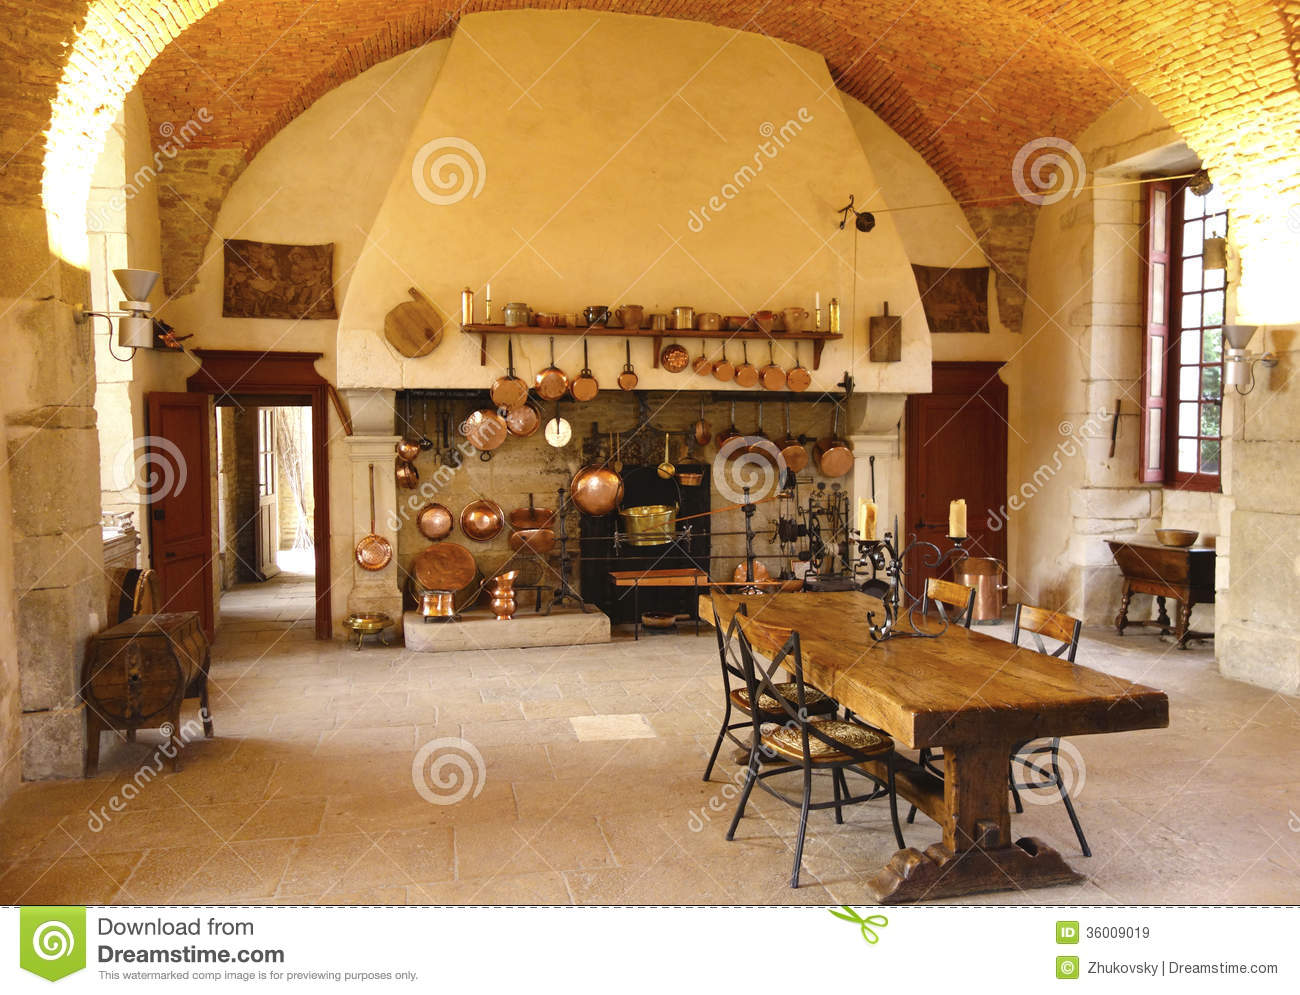 the ancient kitchen at chateau de pommard winery stock image image 36009019. Black Bedroom Furniture Sets. Home Design Ideas